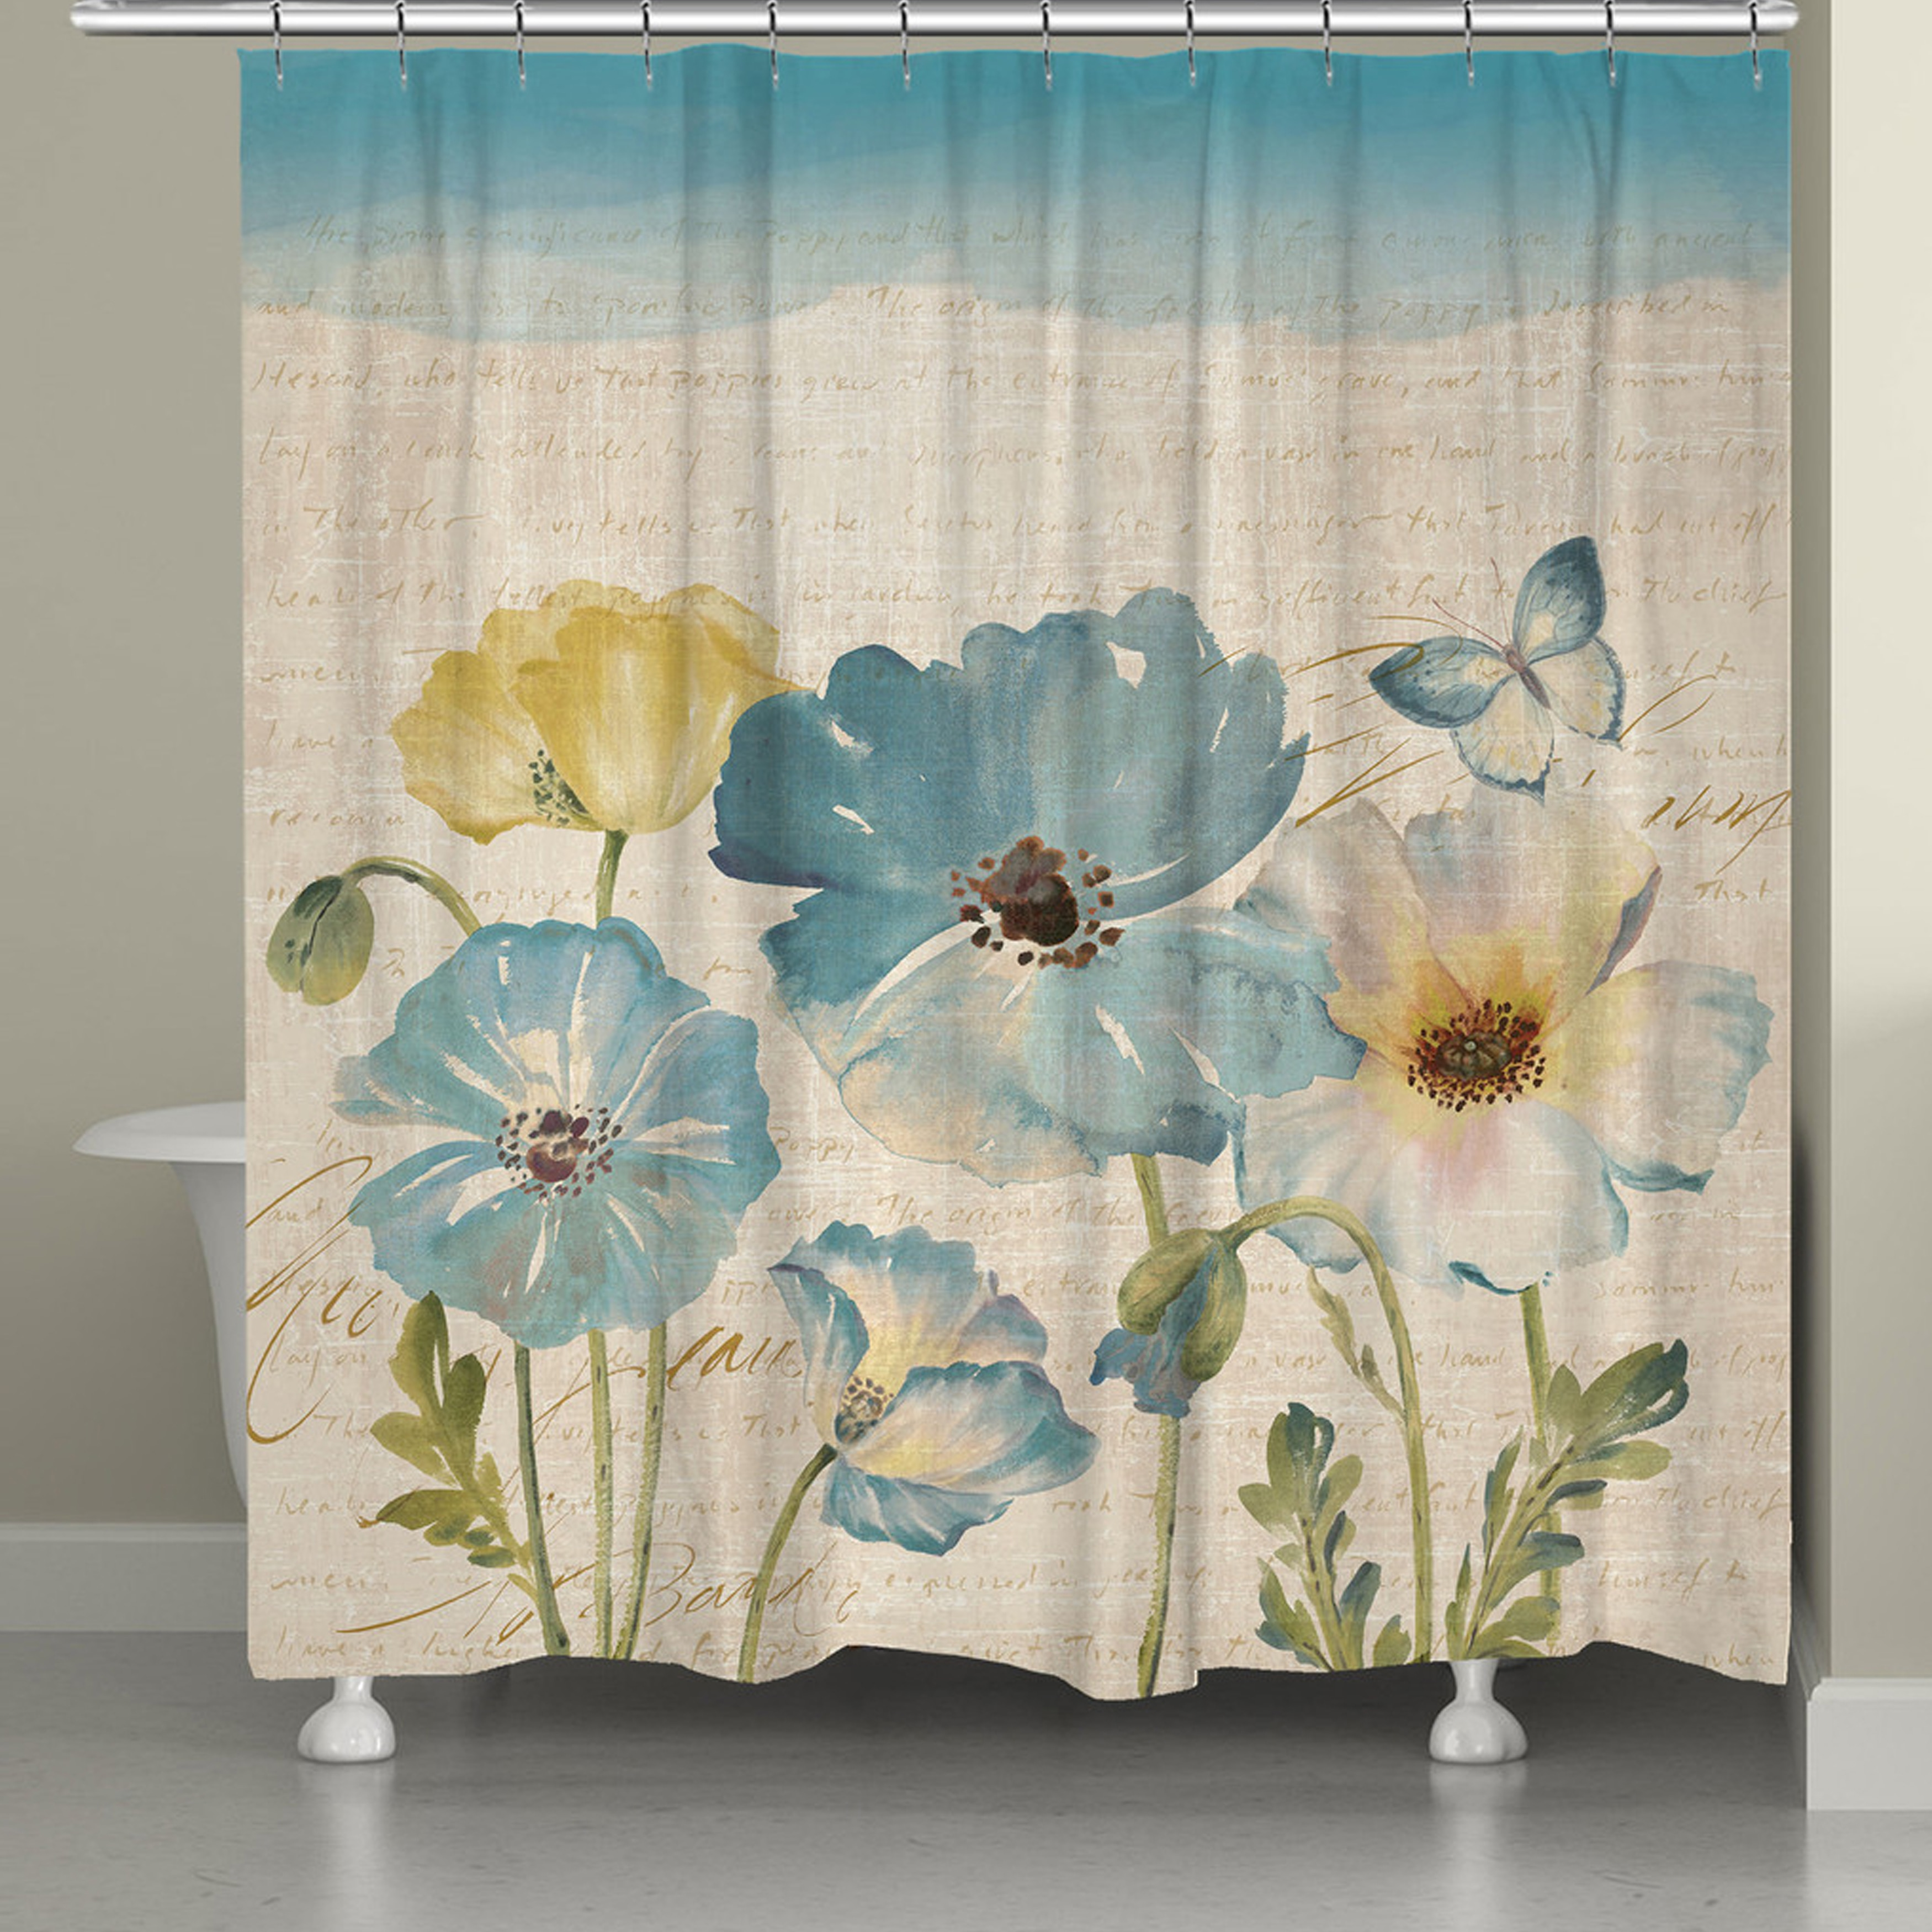 Shop Laural Home Watercolor Teal Poppies 71 X 72 Inch Shower Curtain